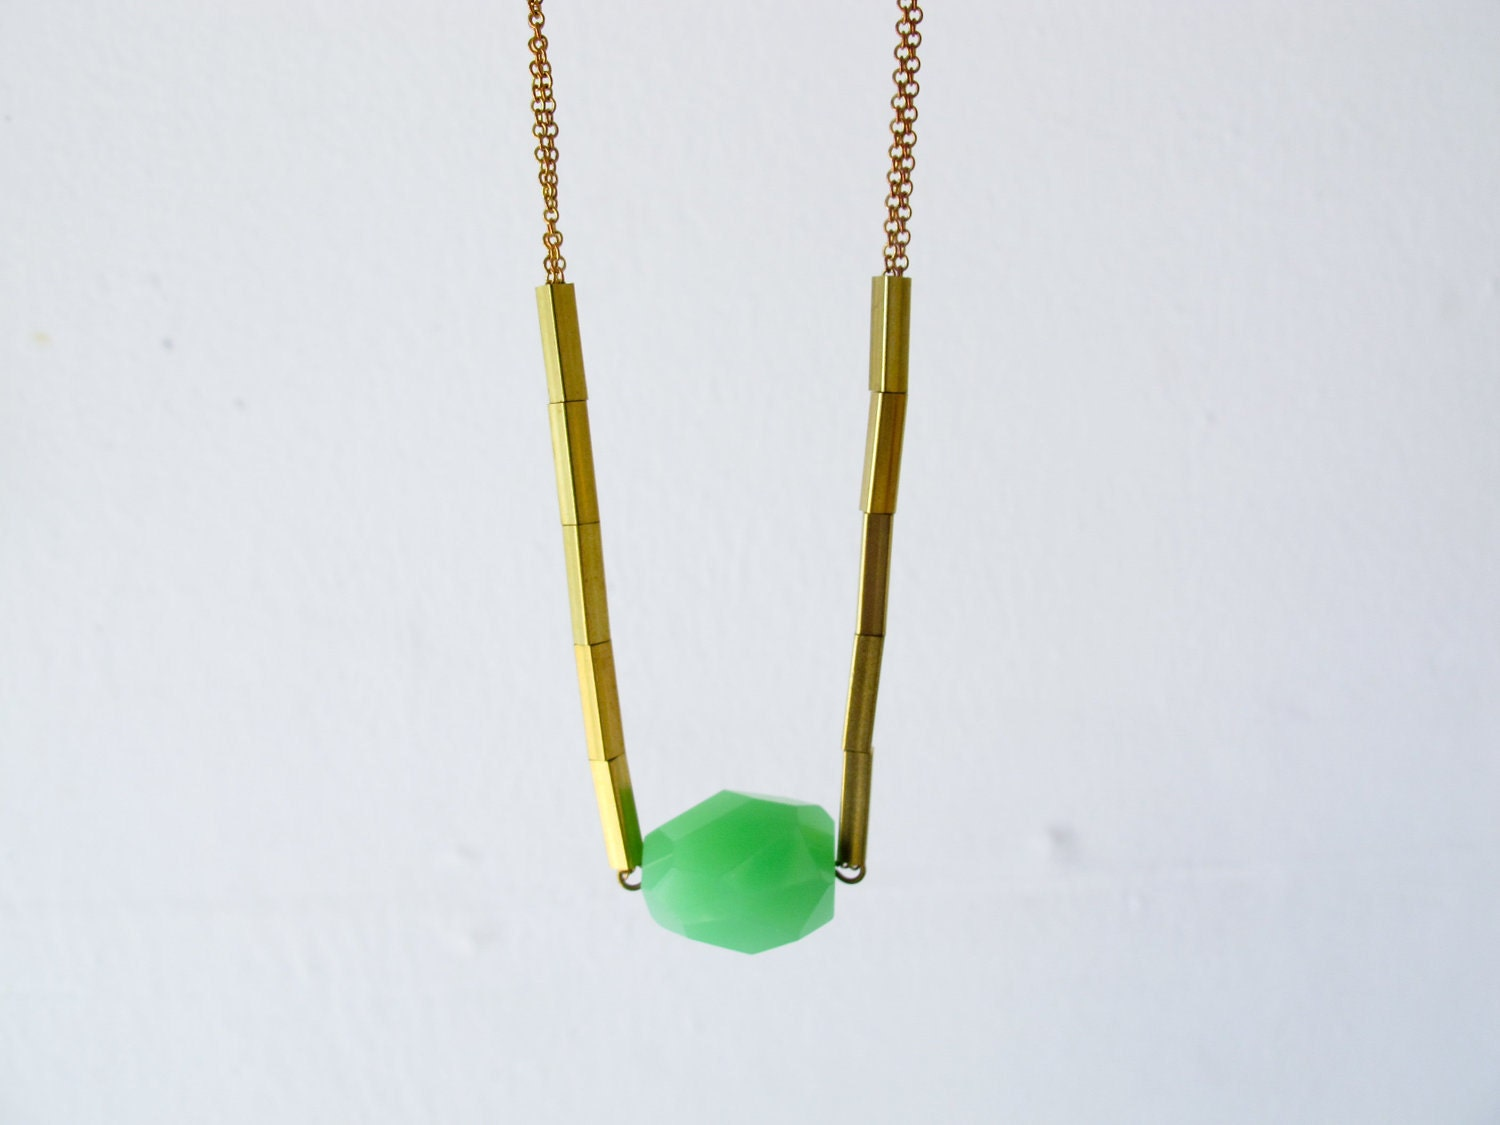 Verte - simple green chalcedony faceted nugget on vintage chain necklace